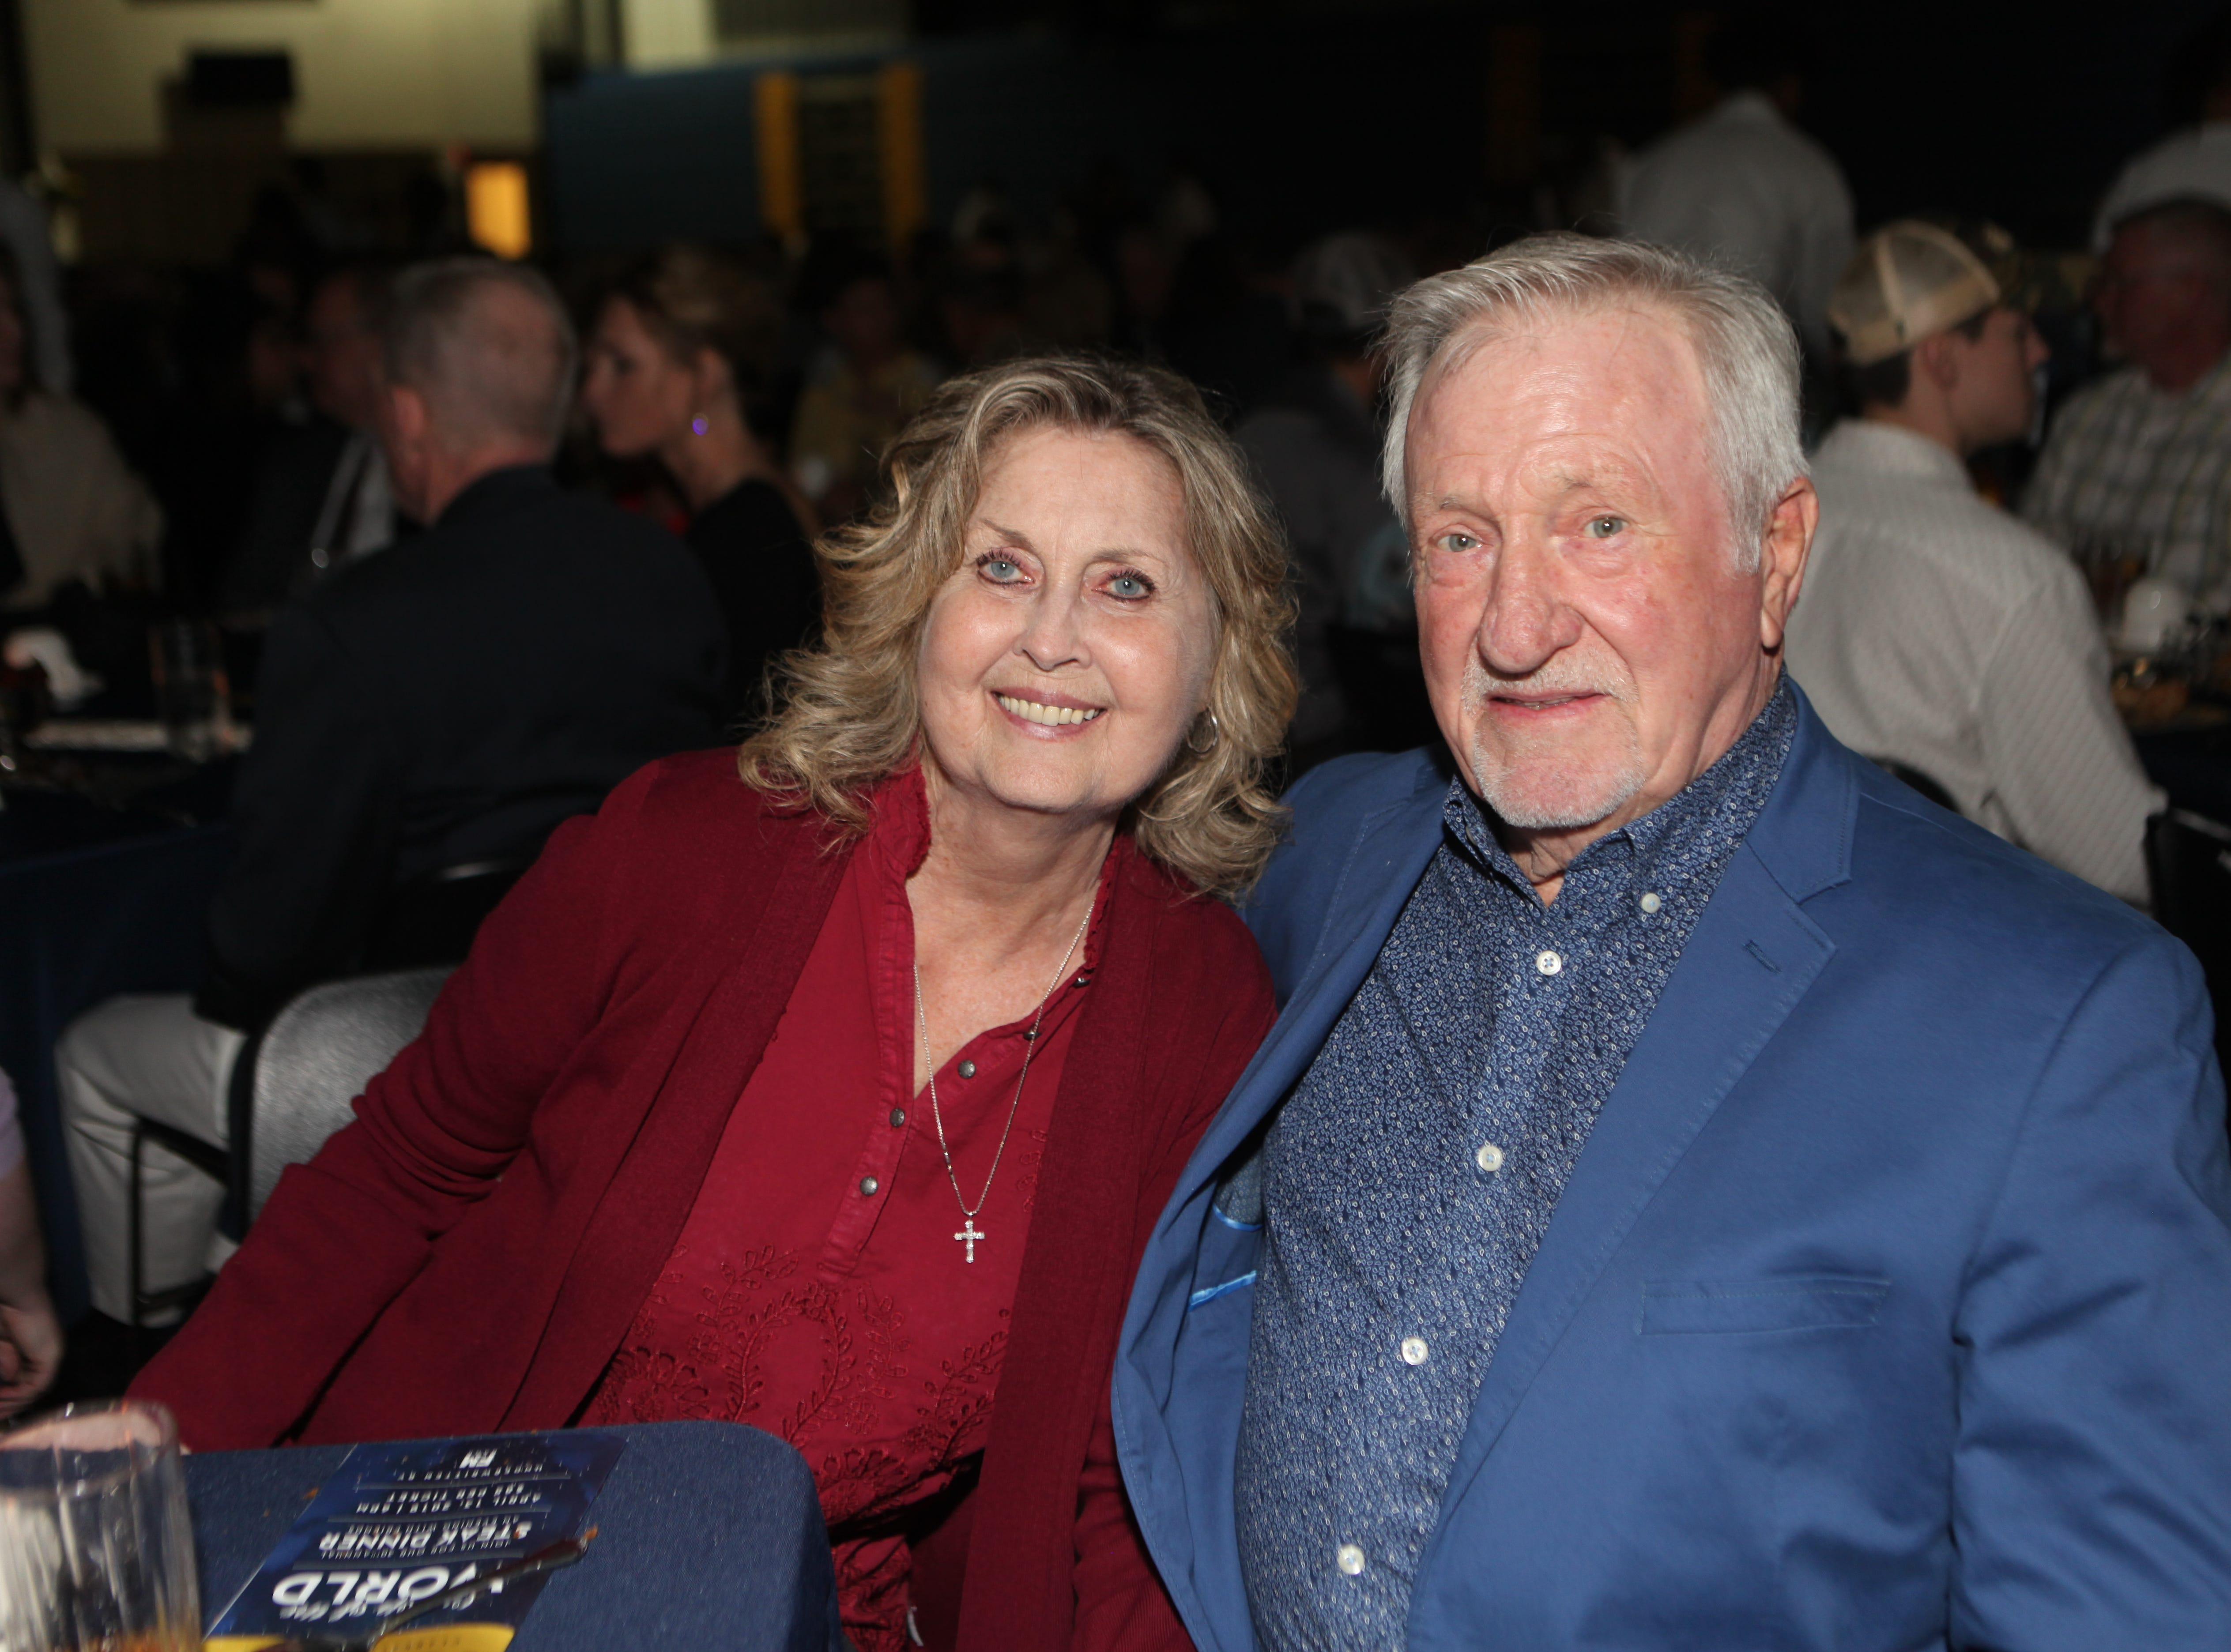 Judy and Bobby Black at Clarksville Academy's Steak Dinner on Saturday, April 13, 2019.